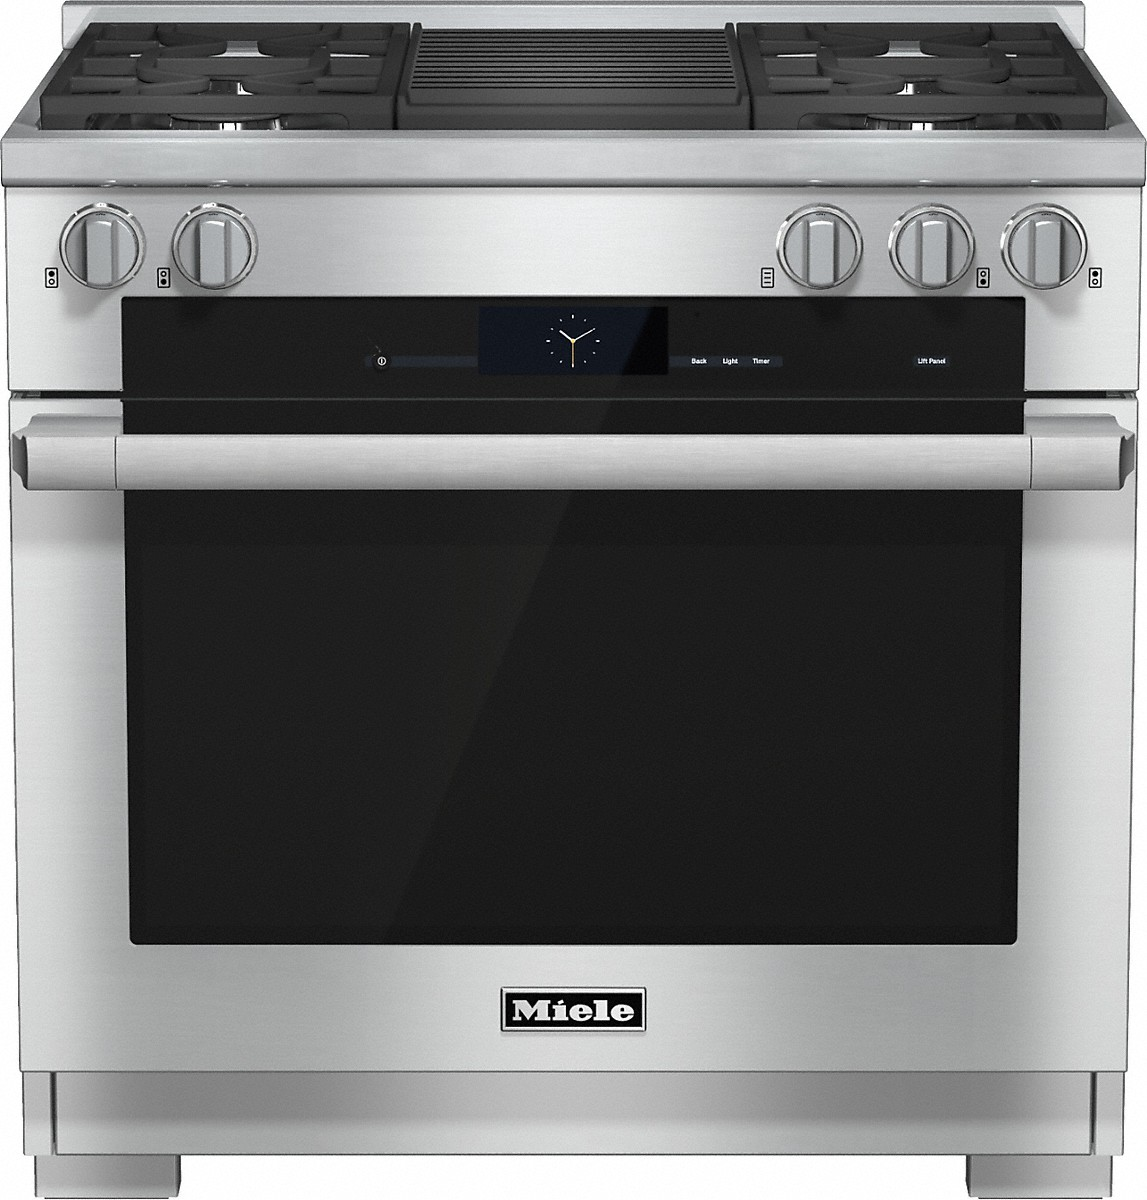 """Model: 25193552USA 